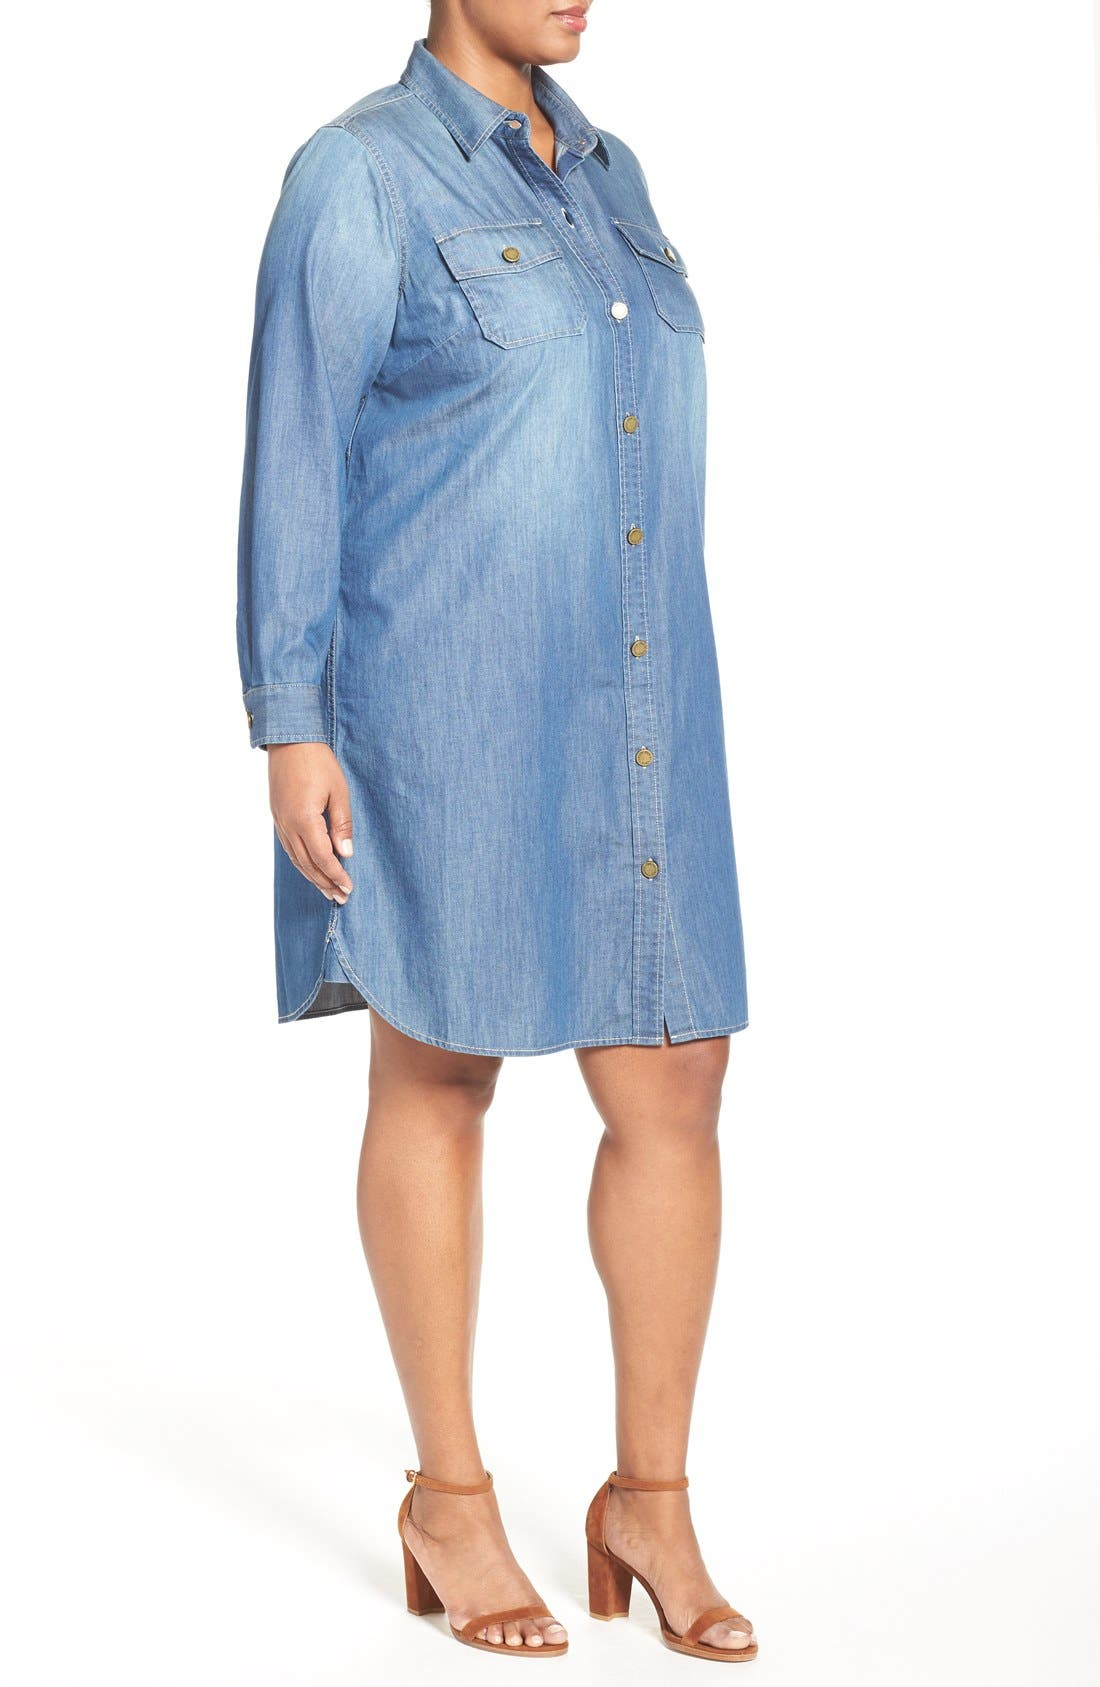 Alternate Image 3  - Two by Vince Camuto Denim Shirtdress (Plus Size)